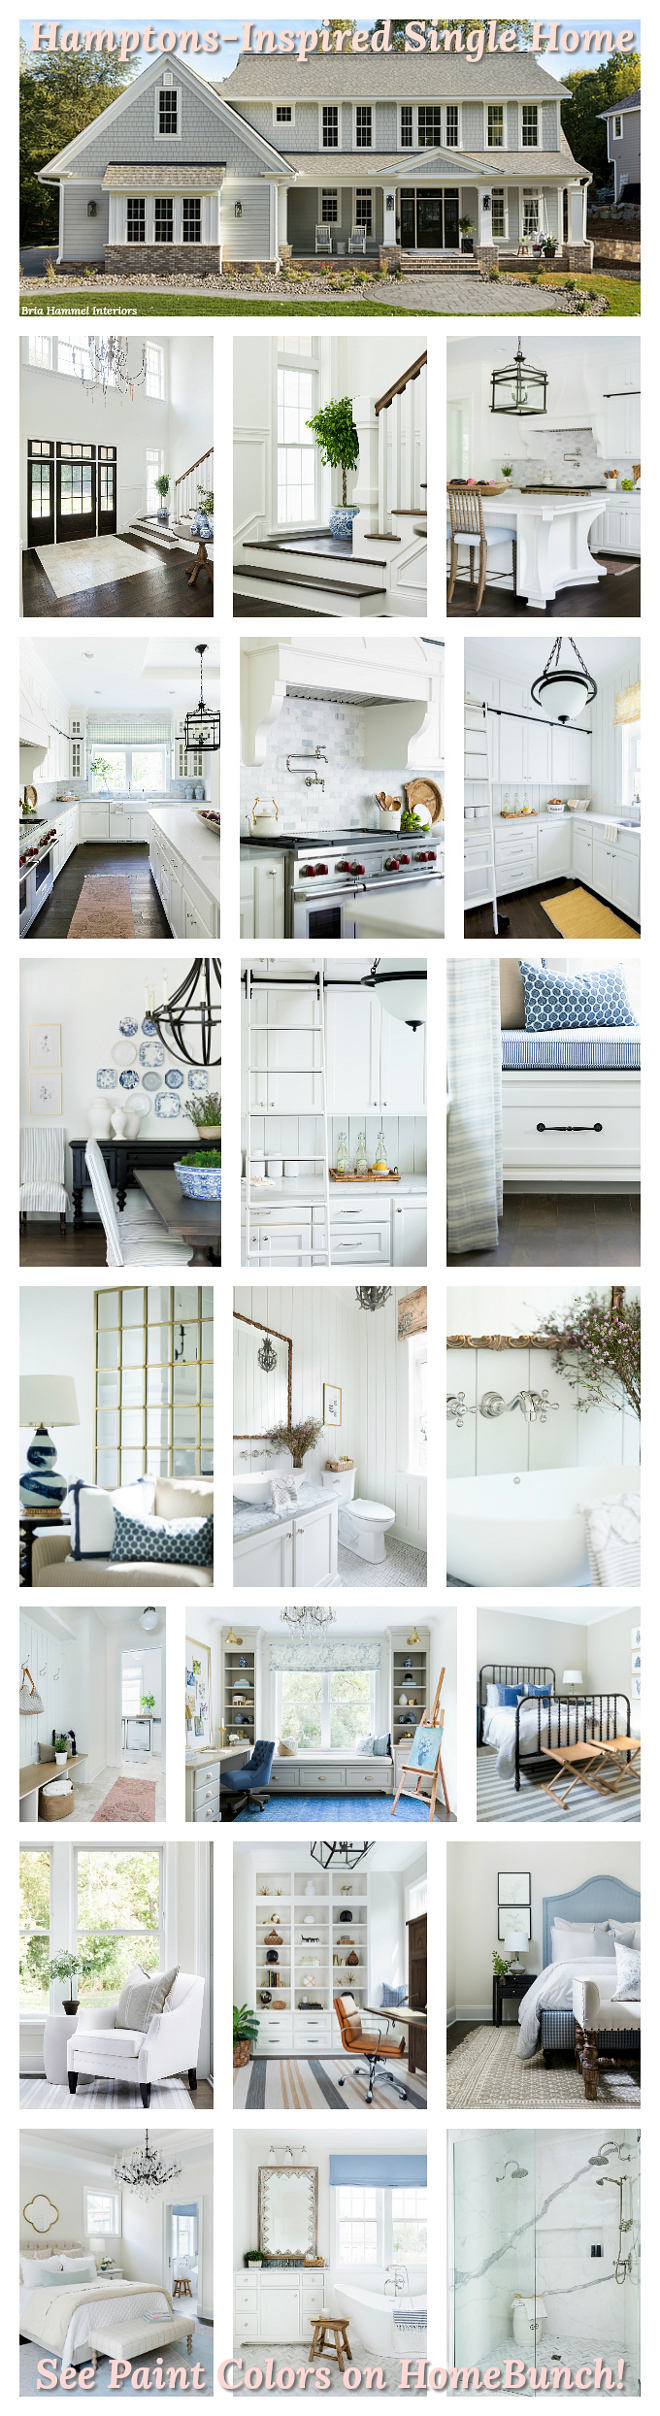 Hamptons-Inspired Single Home Hamptons-Inspired Single Home Photos and Paint Colors